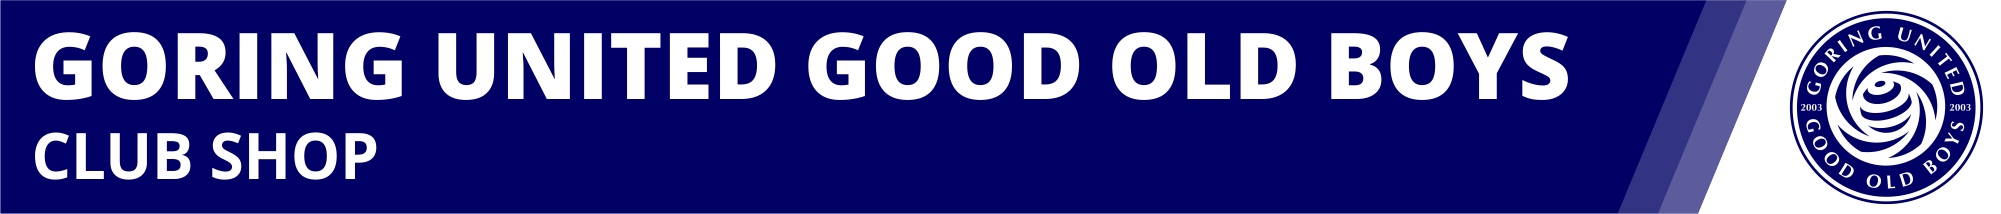 goring-united-good-old-boys-club-shop-banner.png